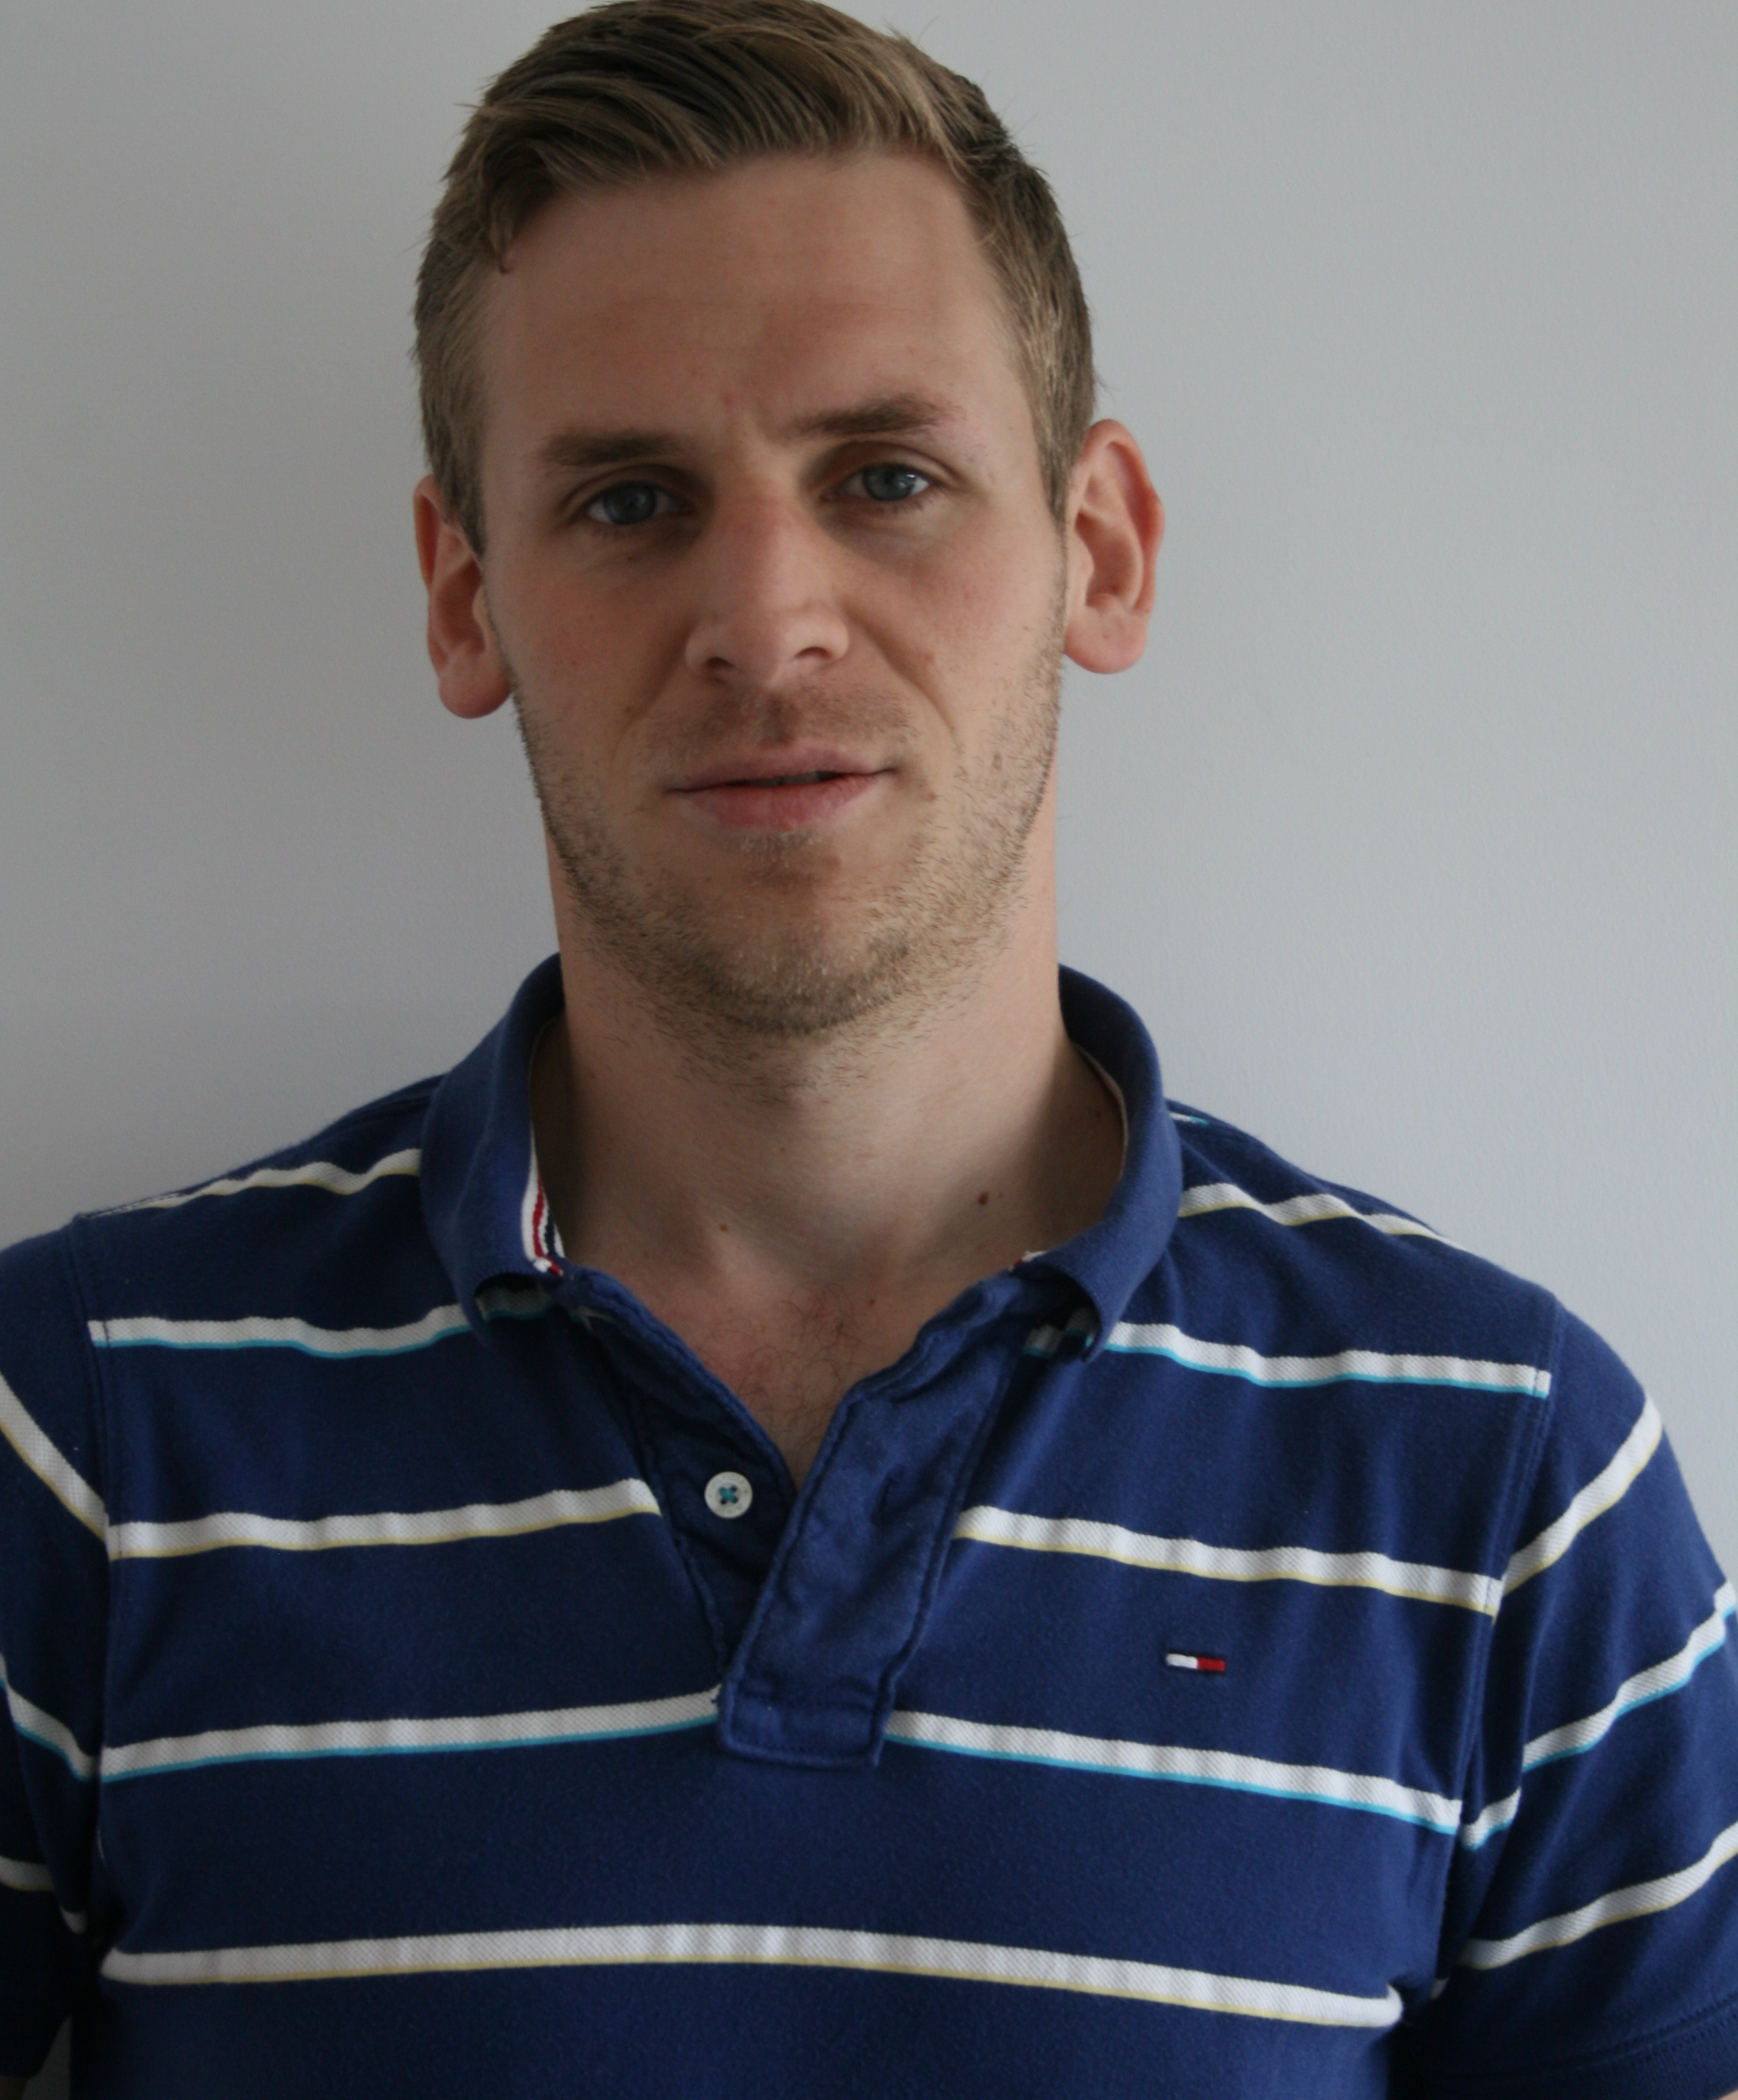 John Barry - BSc (Hons) in Agricultural Science (WD191)